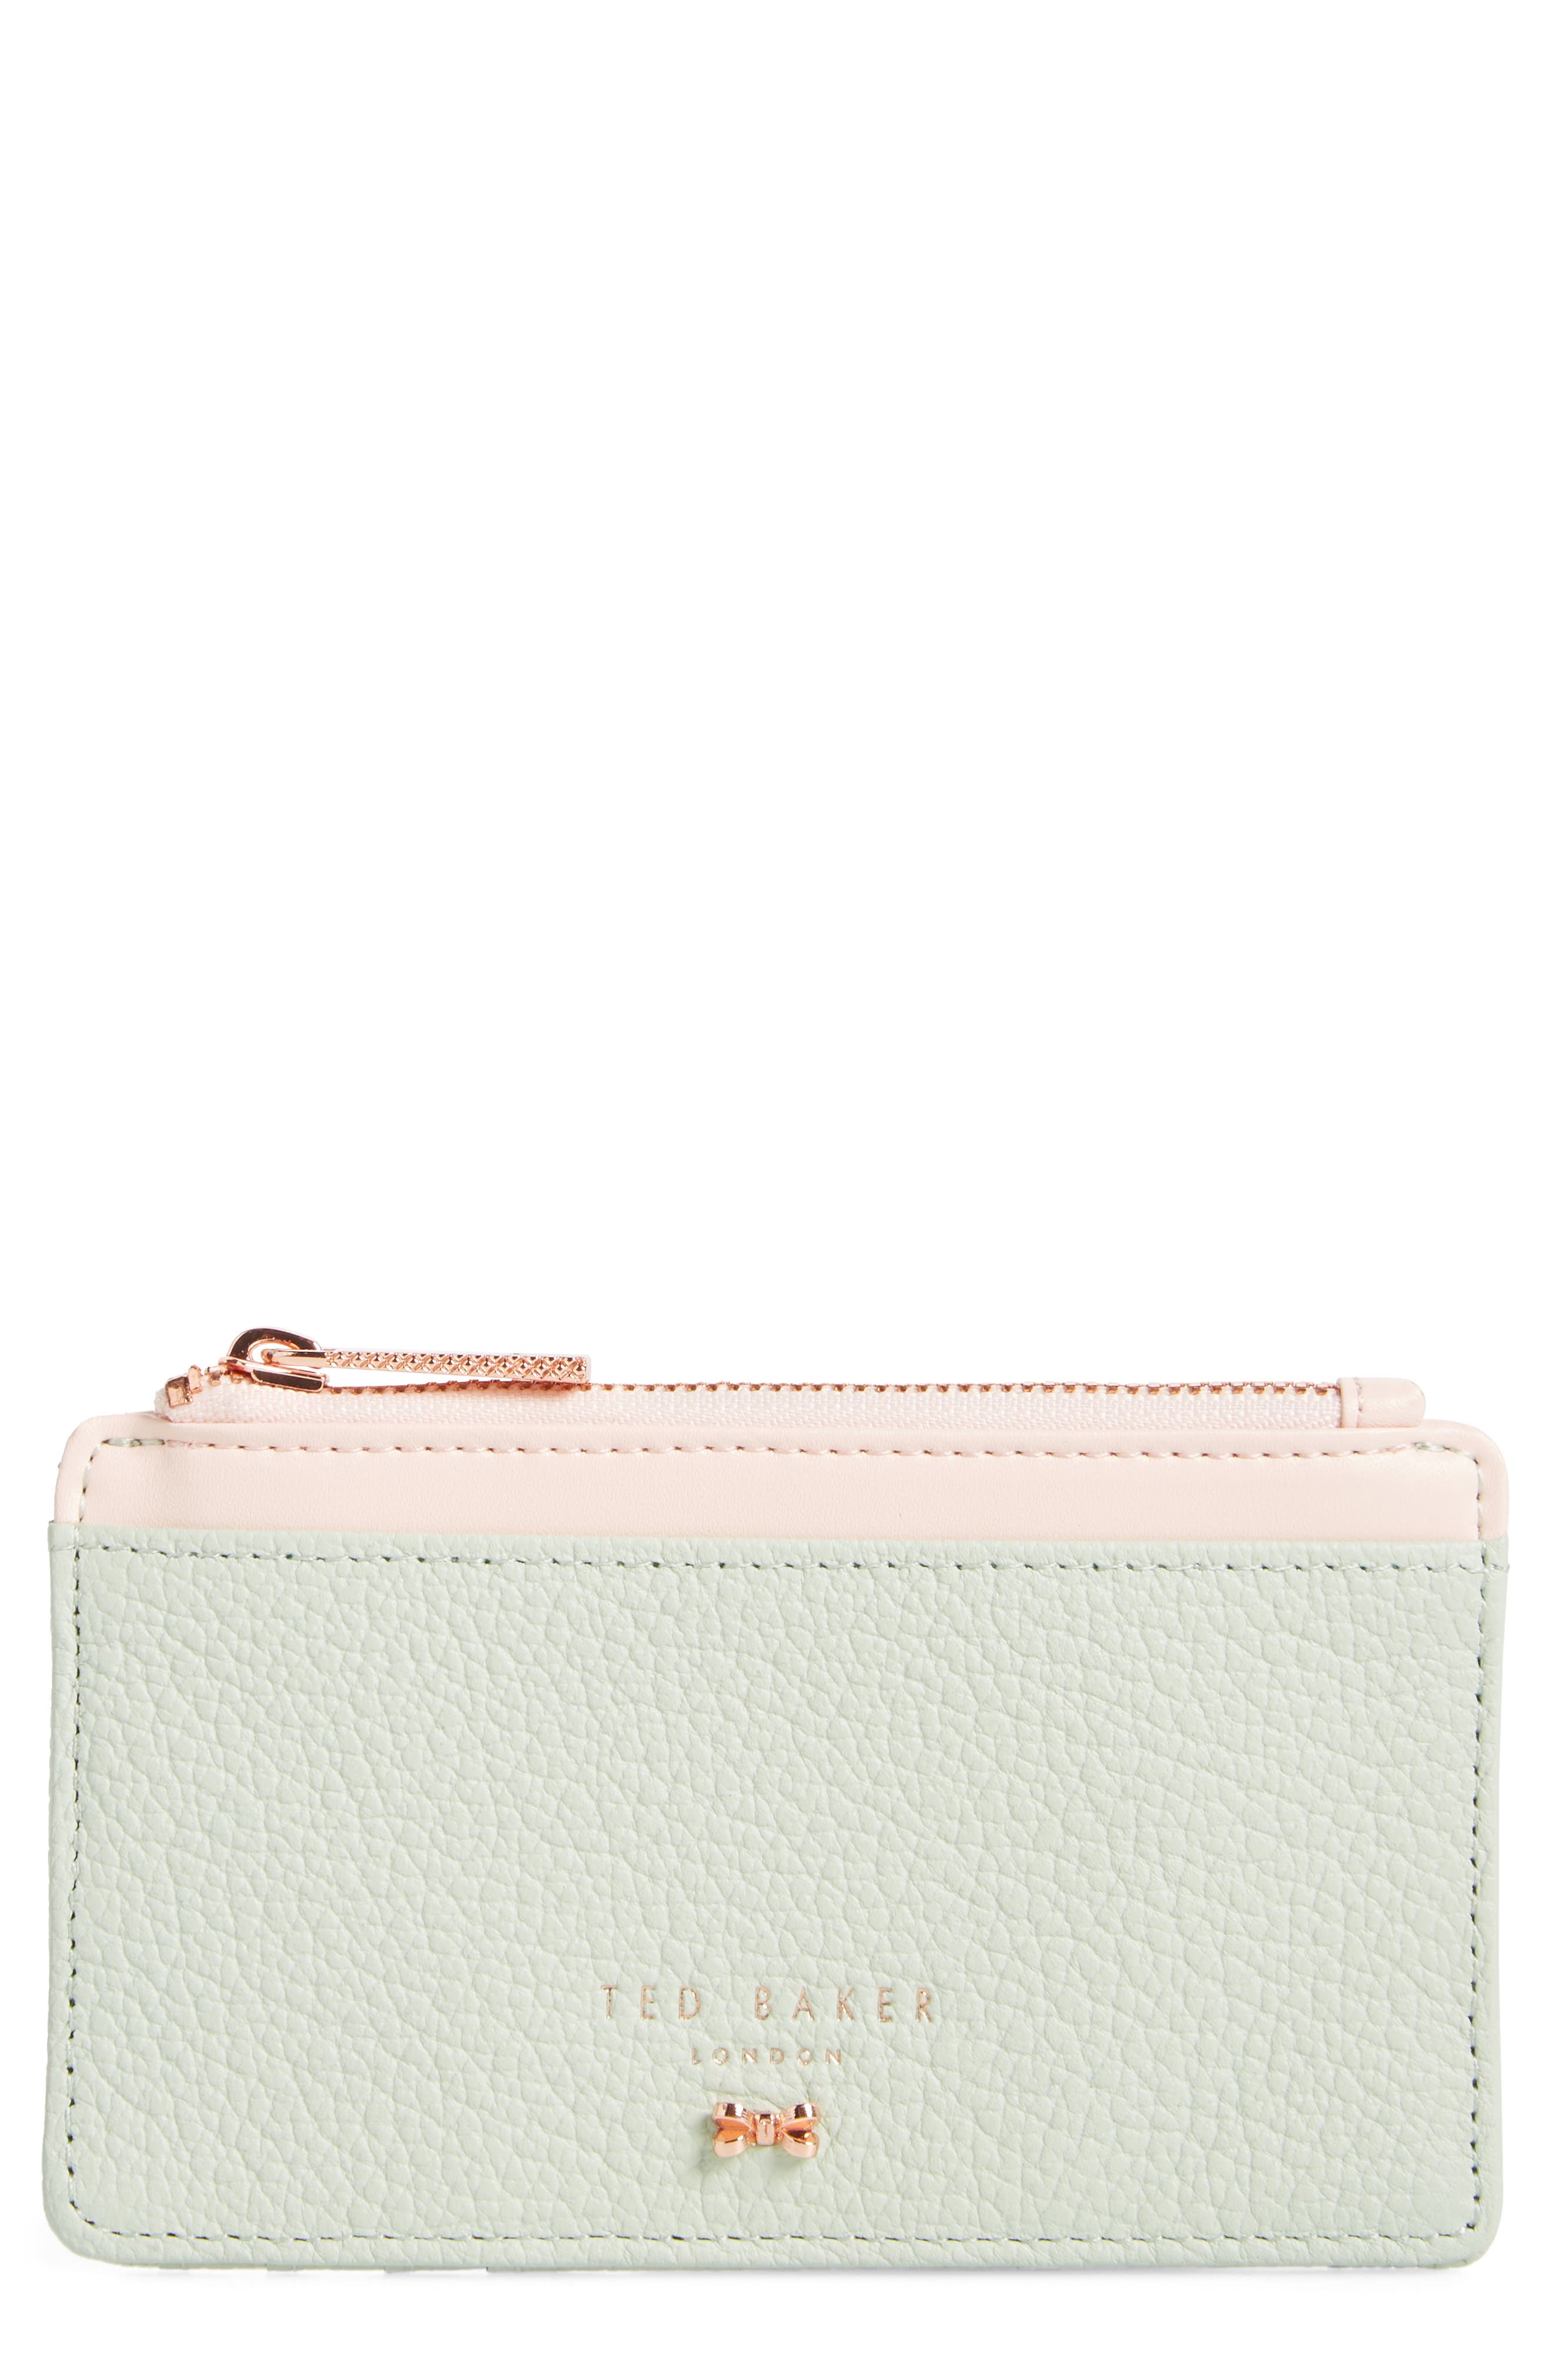 Alica Top Zip Leather Card Case,                             Main thumbnail 1, color,                             Olive